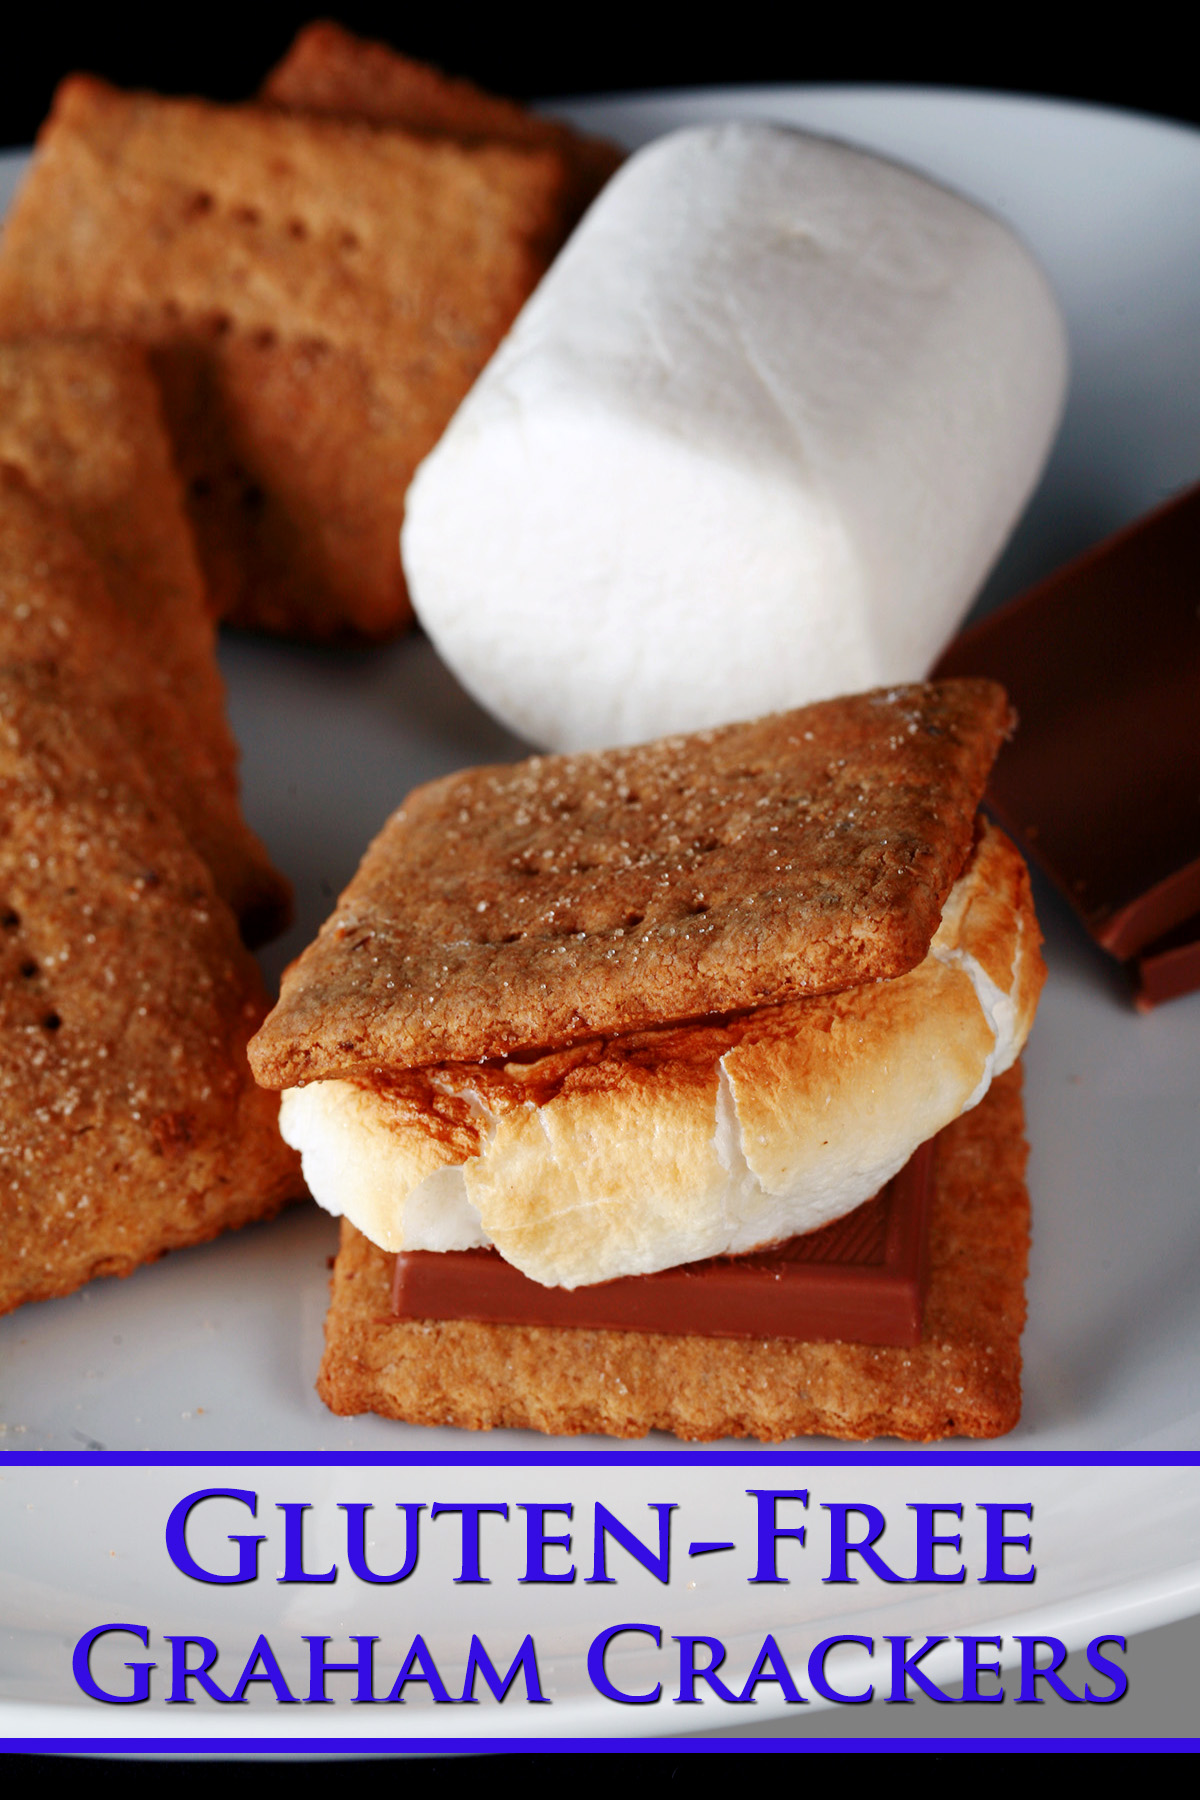 A white plate with rows of square shaped gluten-free graham crackers, a couple large marshmallows, and a piece of chocolate. Two crackers,a  piece of chocolate, and a toasted marshmallow have been assembled into a S'more also on the place.